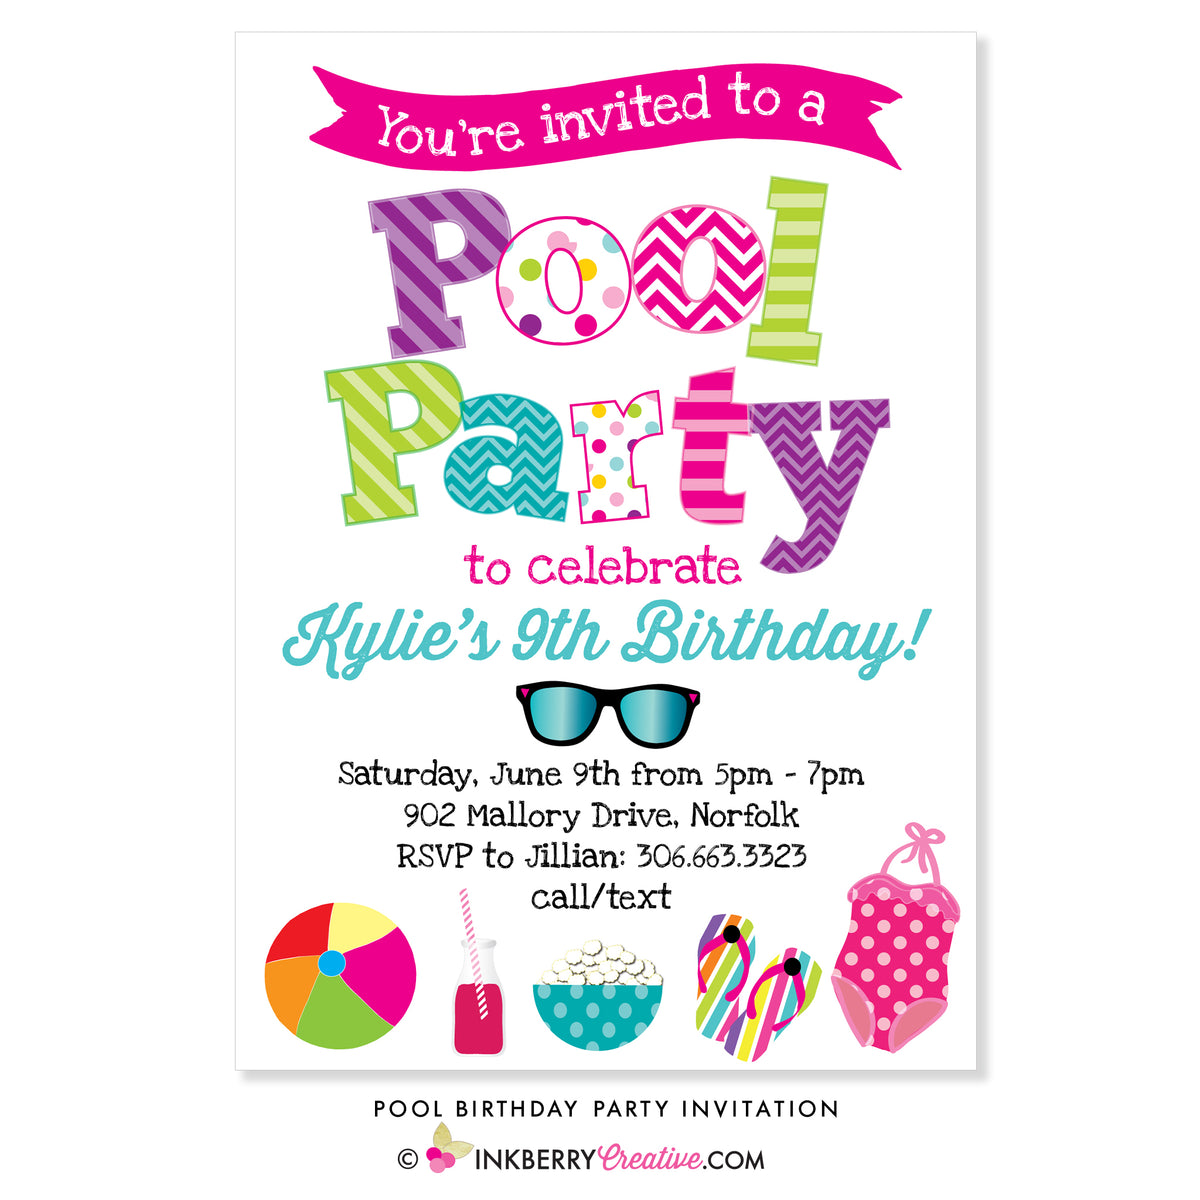 Pool Swimming Birthday Party Invitation Inkberry Creative Inc